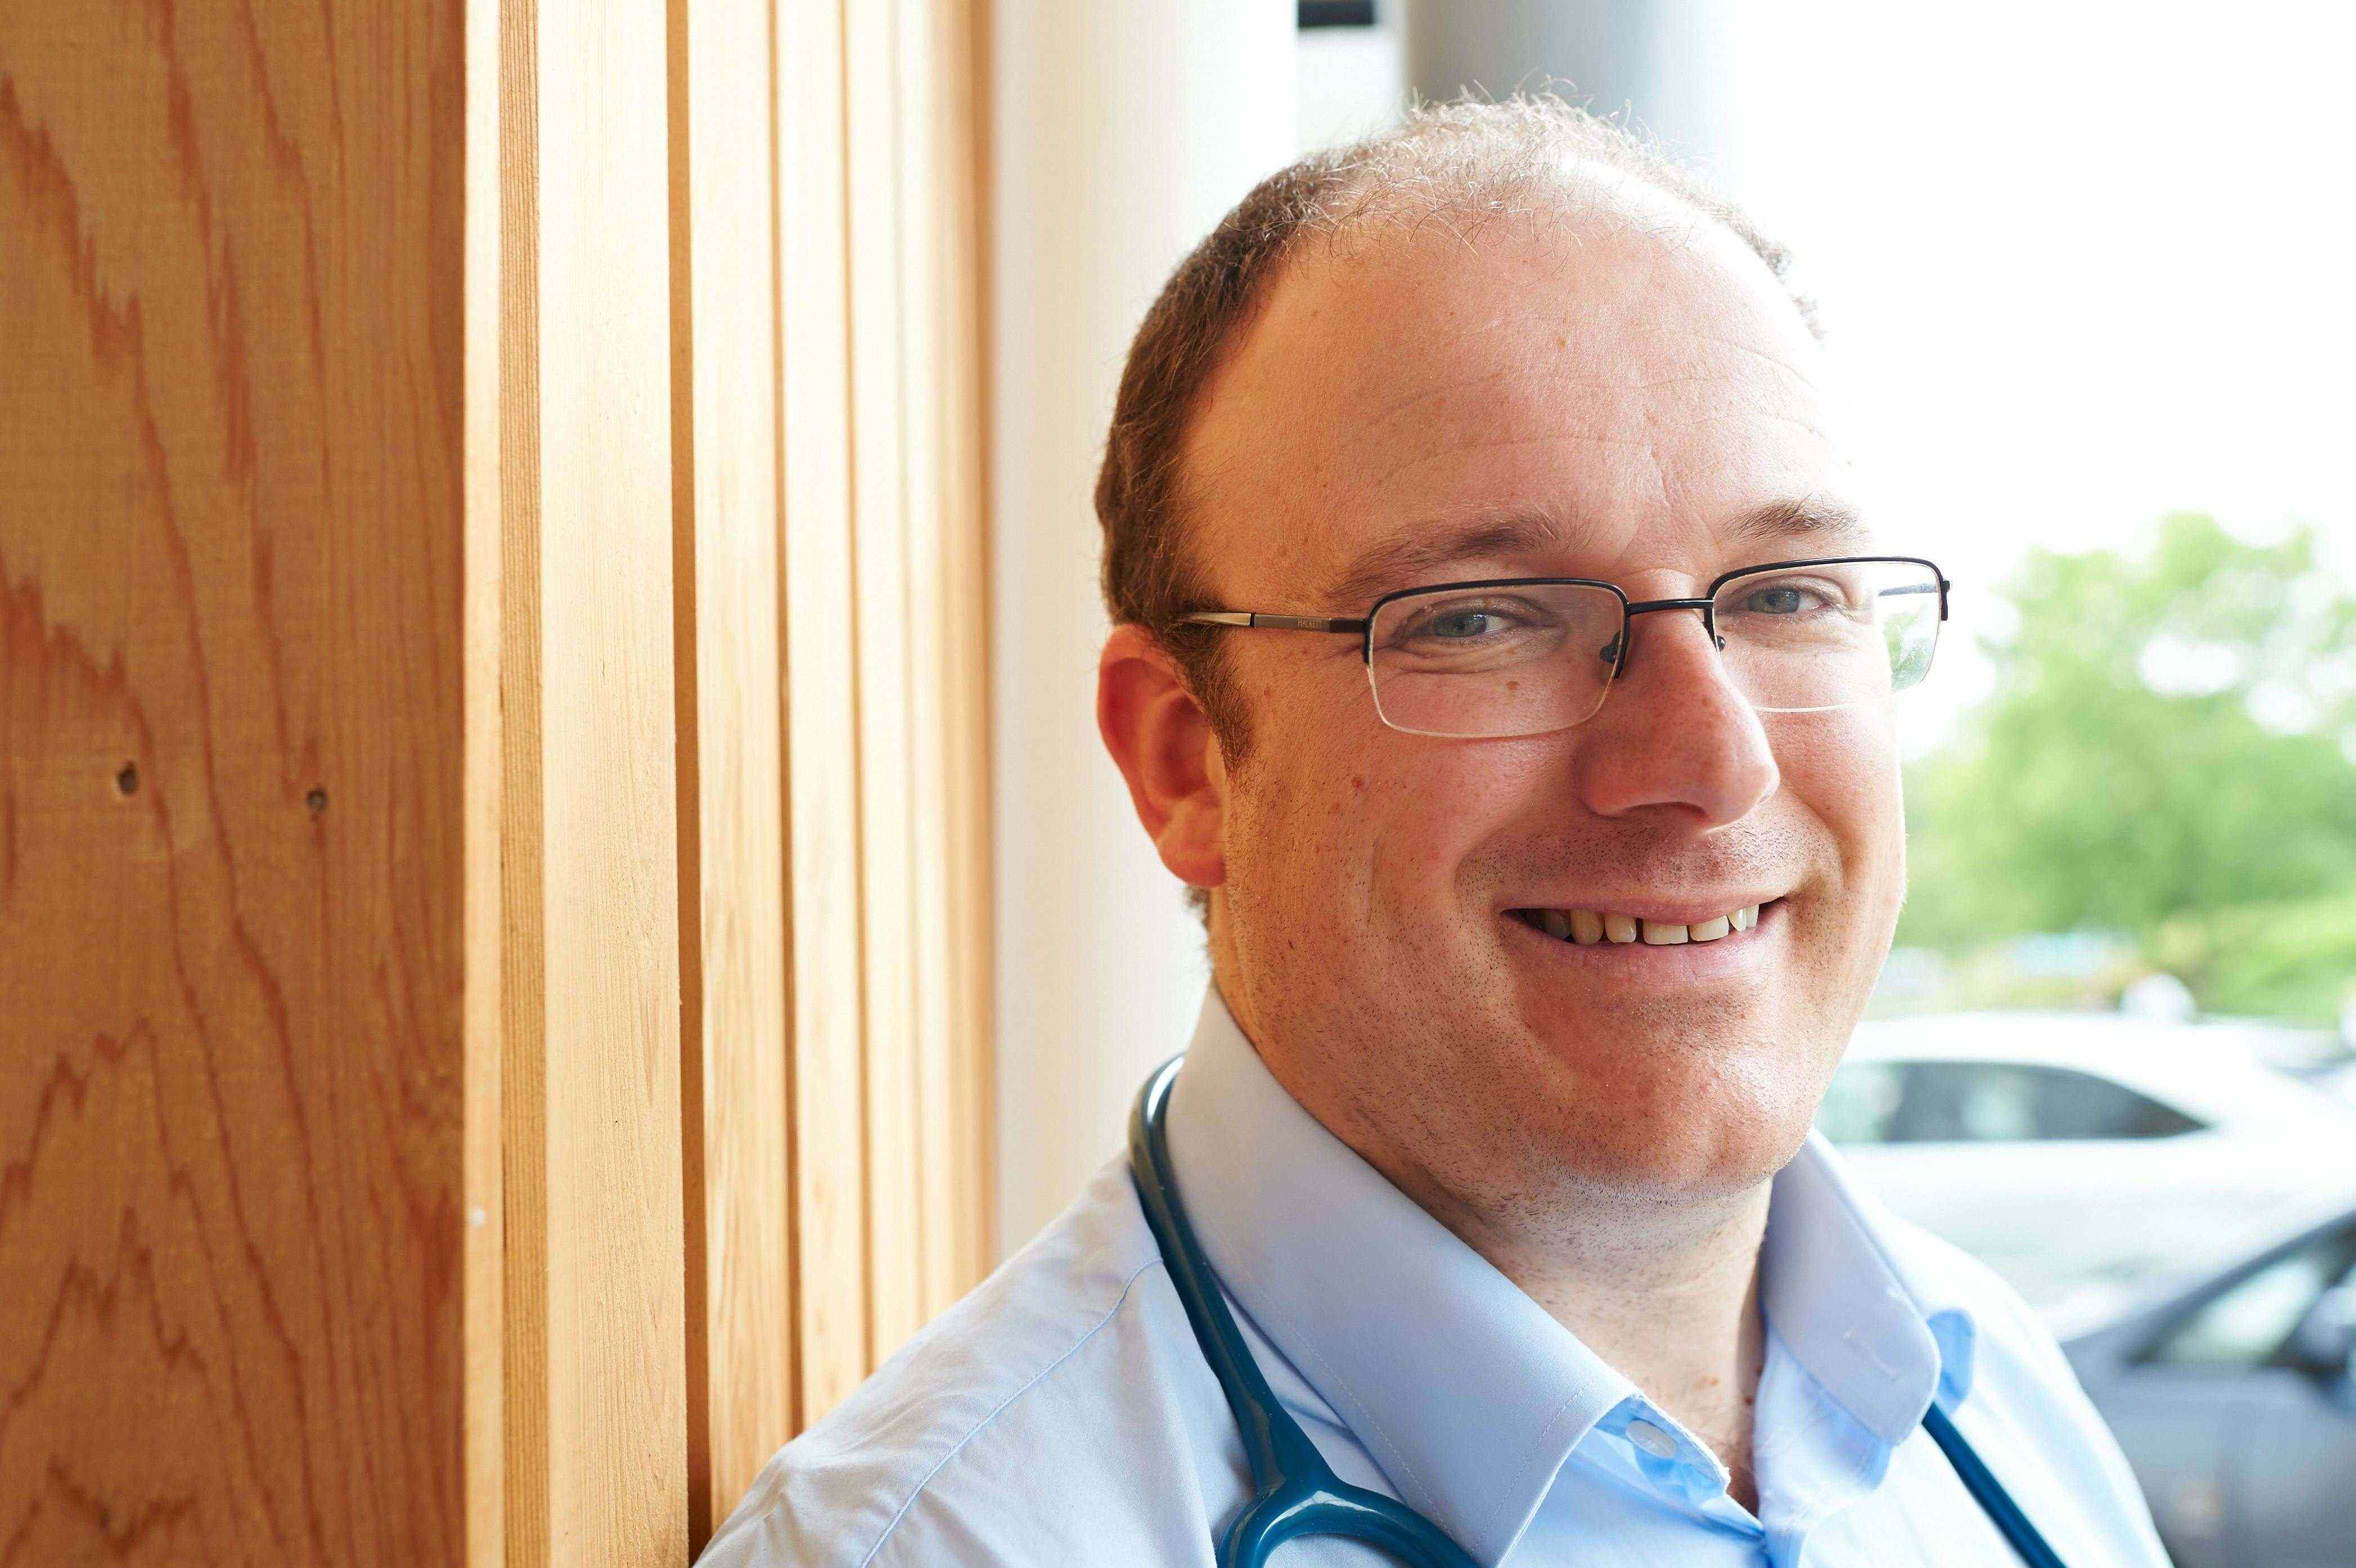 Pediatric Allergy Doctor in Dubai - Dr David Cremonescini